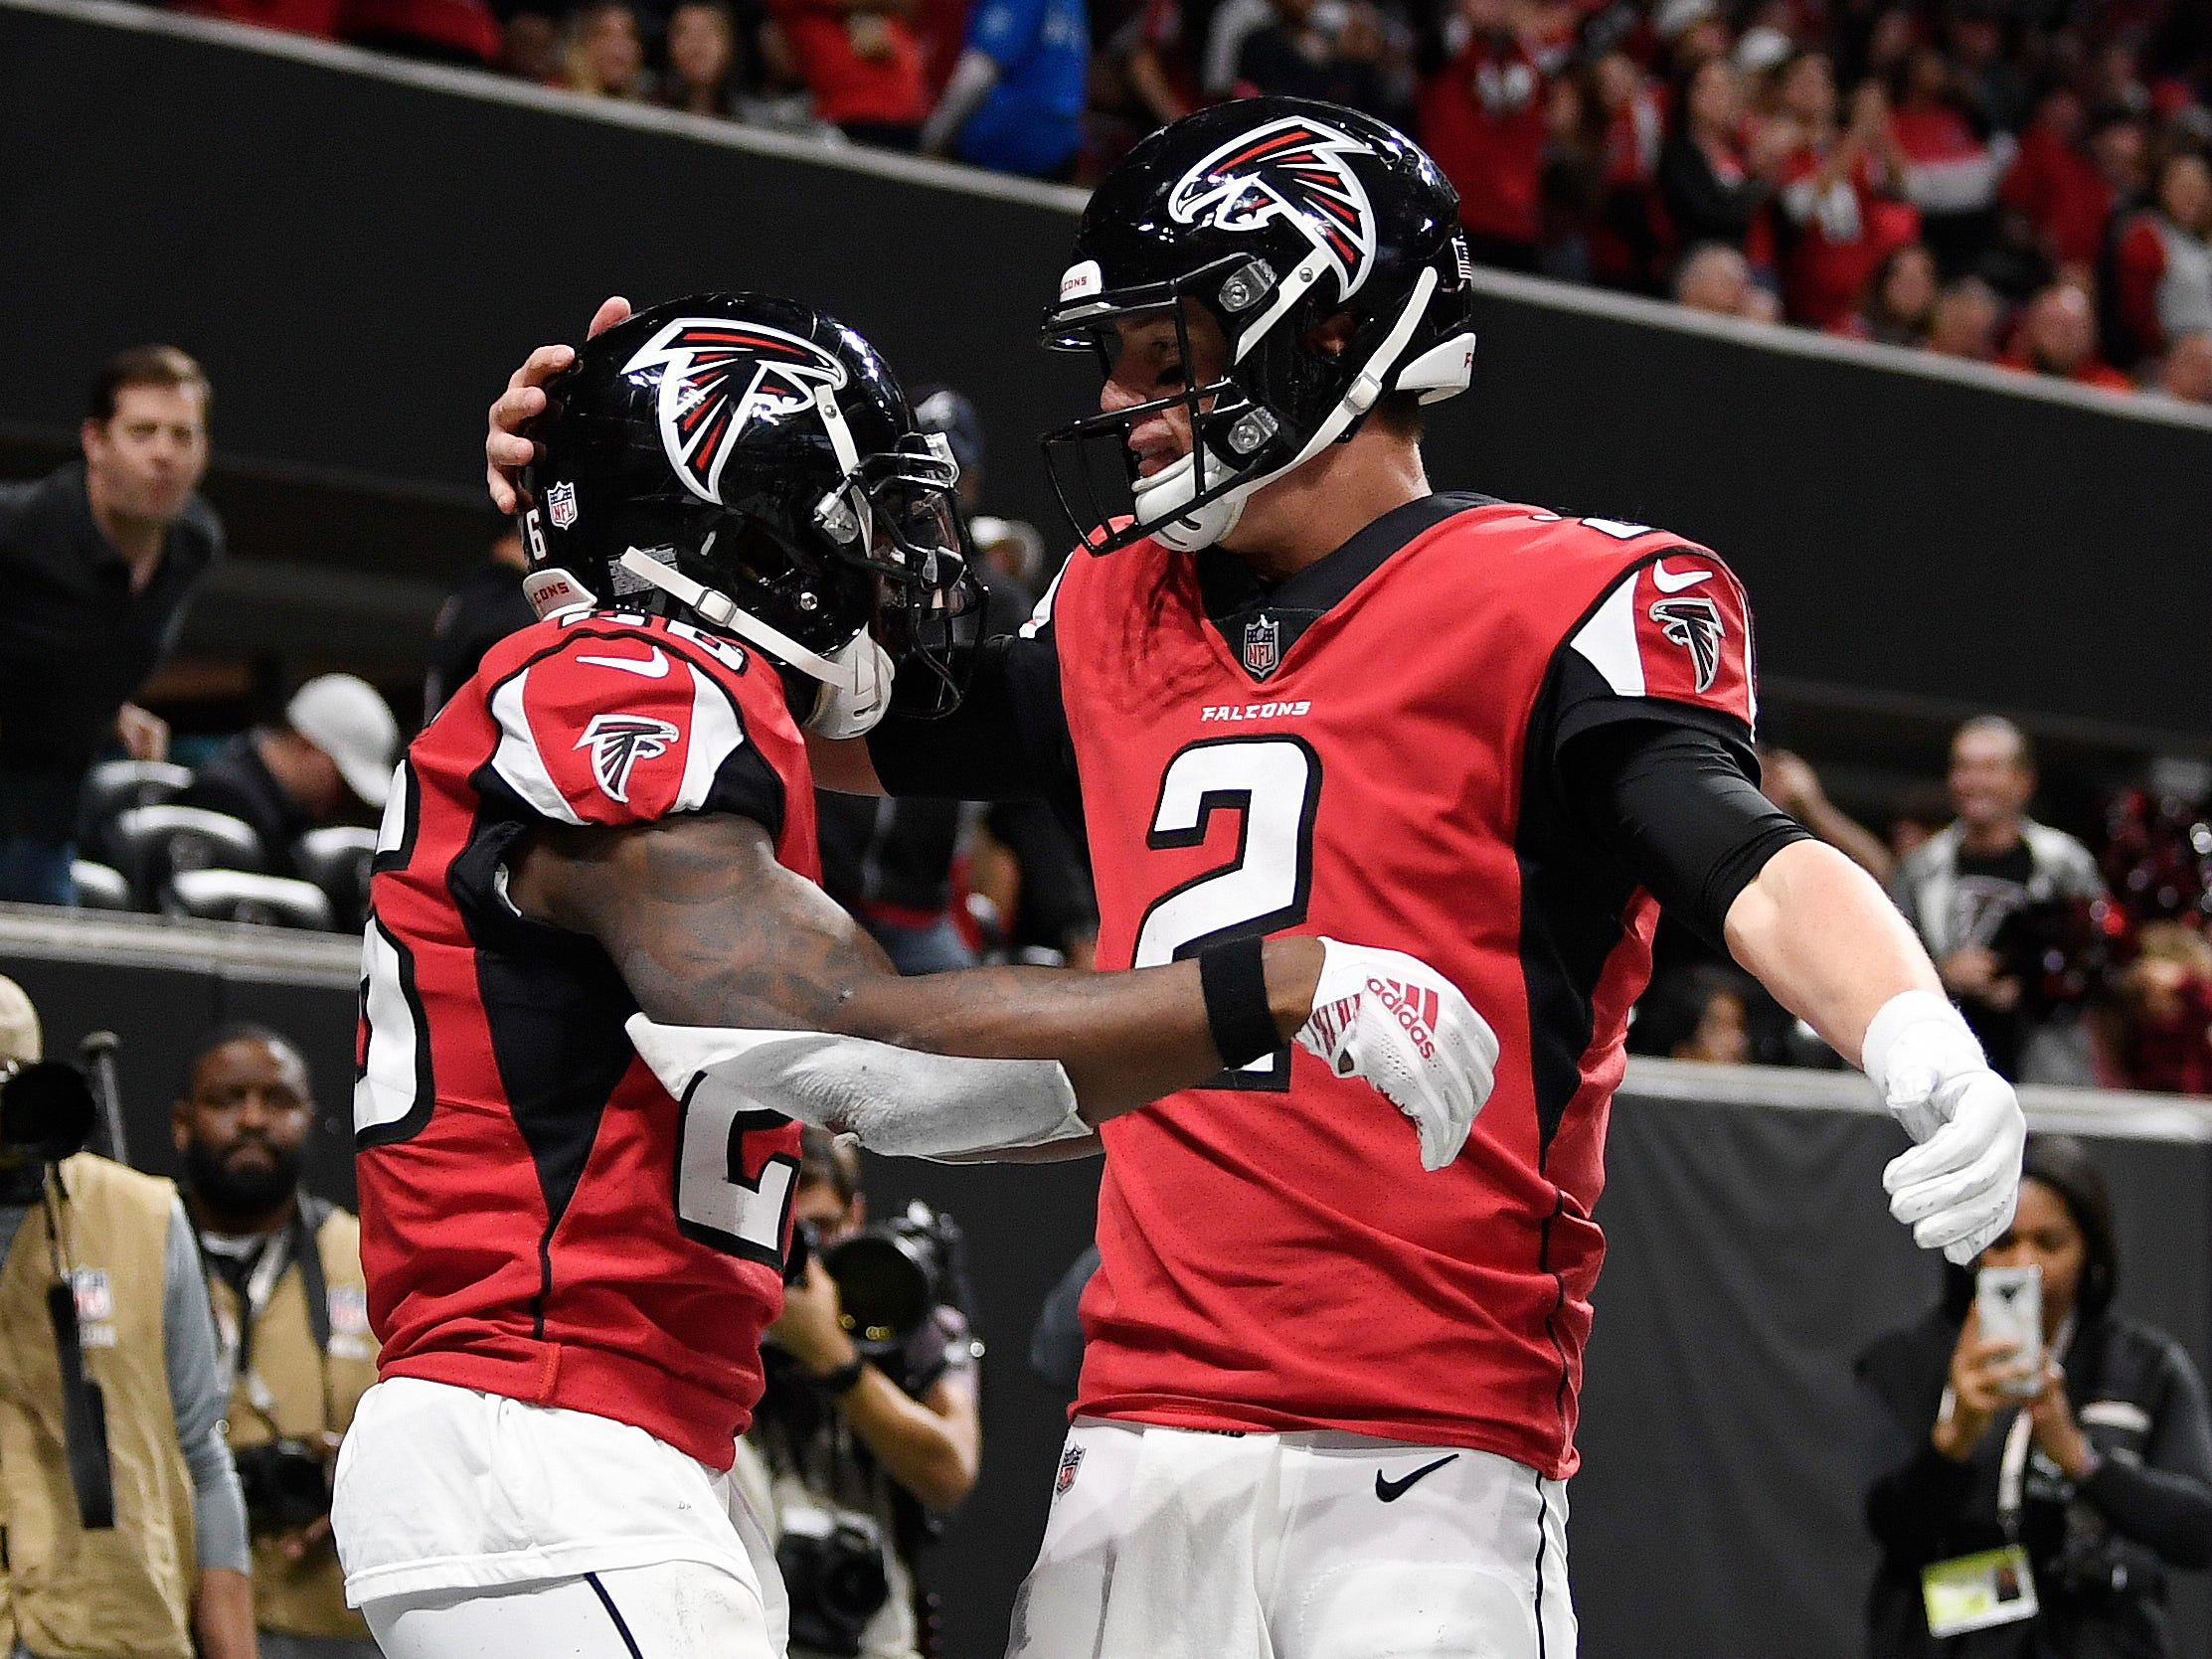 Atlanta Falcons running back Tevin Coleman (26) celebrates with quarterback Matt Ryan after scoring a touchdown during the second half of an NFL football game against the Arizona Cardinals , Sunday, Dec. 16, 2018, in Atlanta.